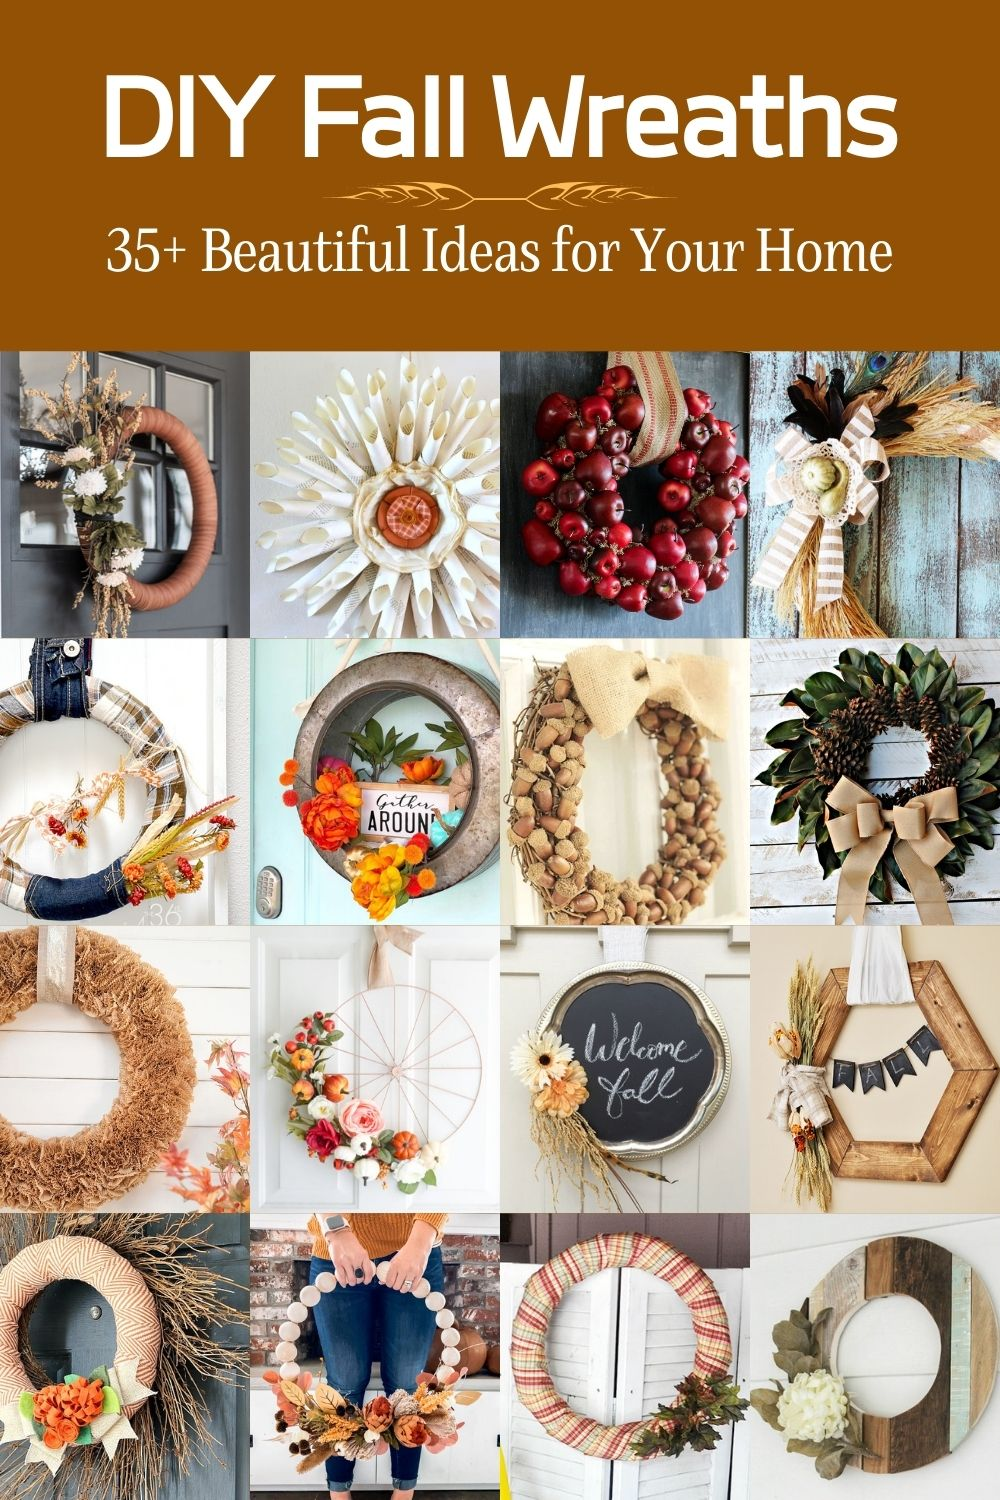 35+ Beautiful DIY Fall Wreath Ideas for Your Home